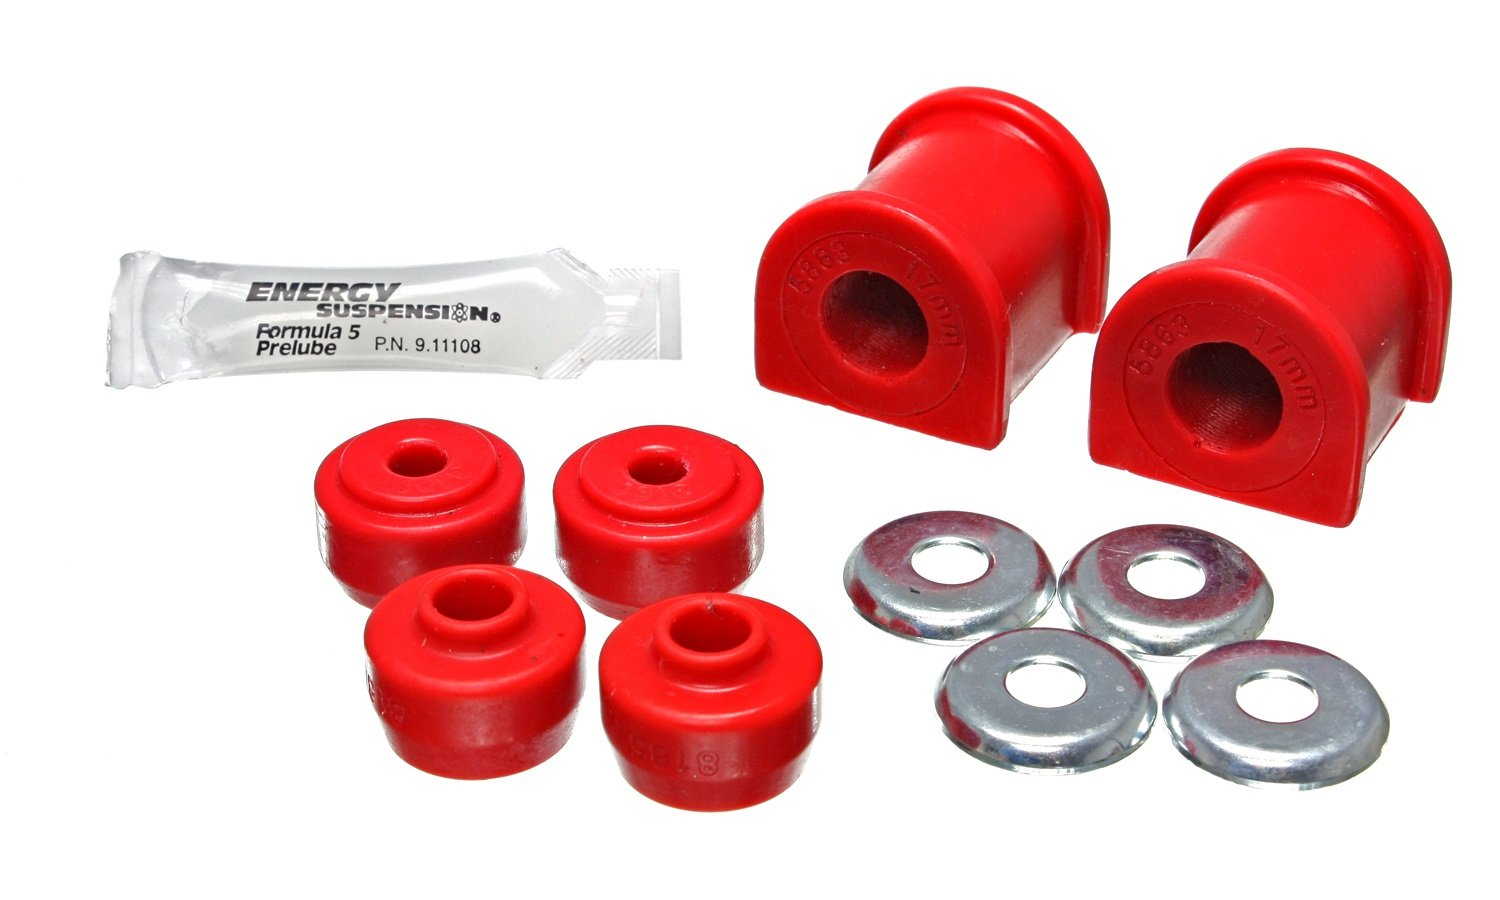 Energy Suspension 8.5136R Rr Sway Bar Buchsen-Set, 17 mm von Energy Suspension